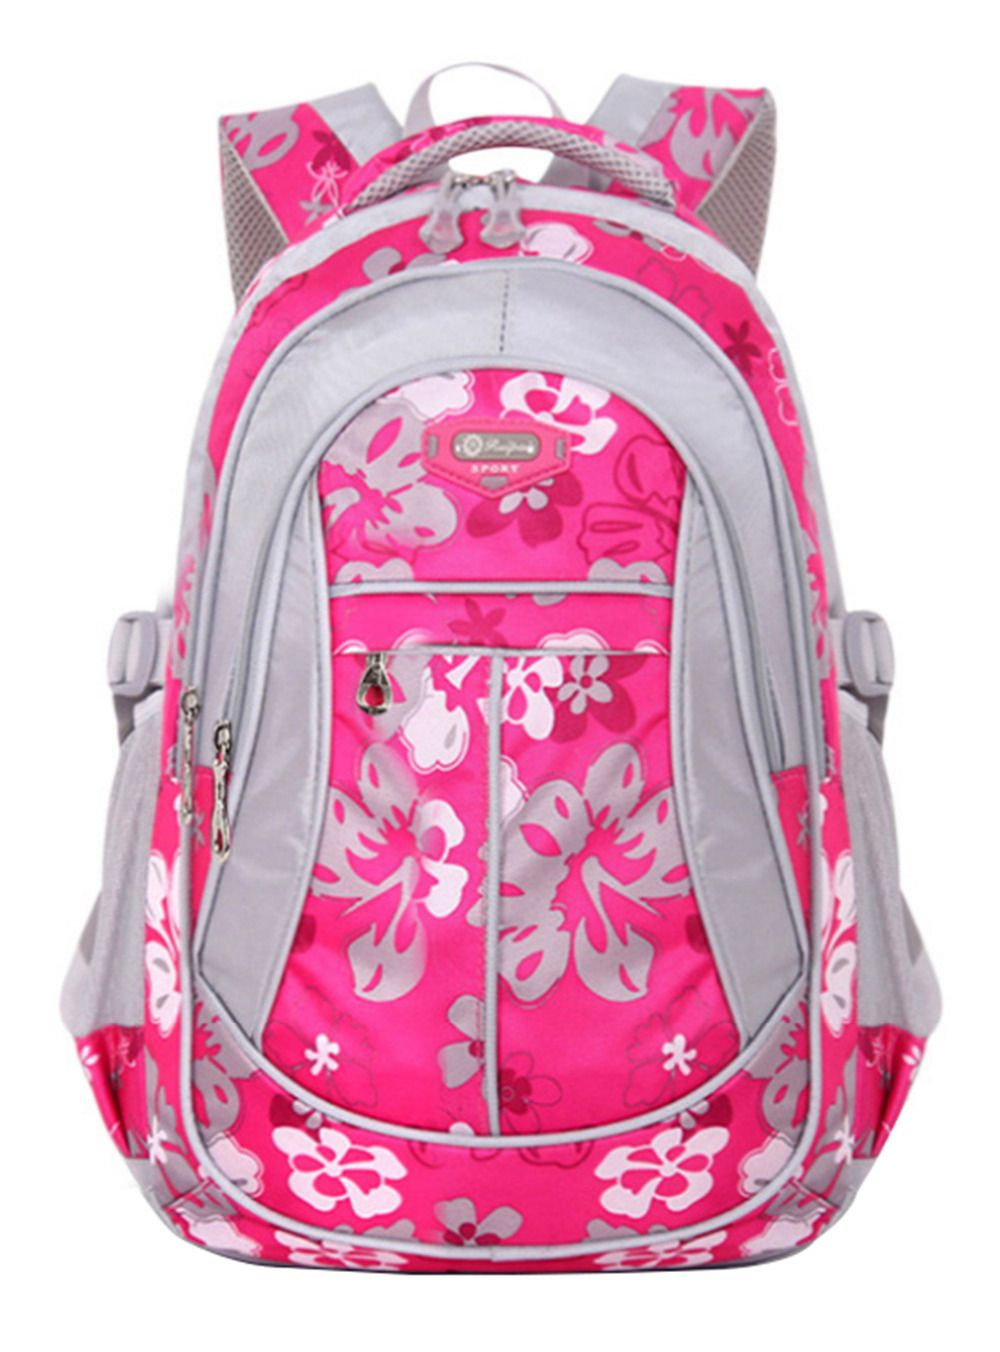 b547bf6910e Children School Bags For Girls Boys New Floral Printing Backpack Kids Book  Bag Primary School Student